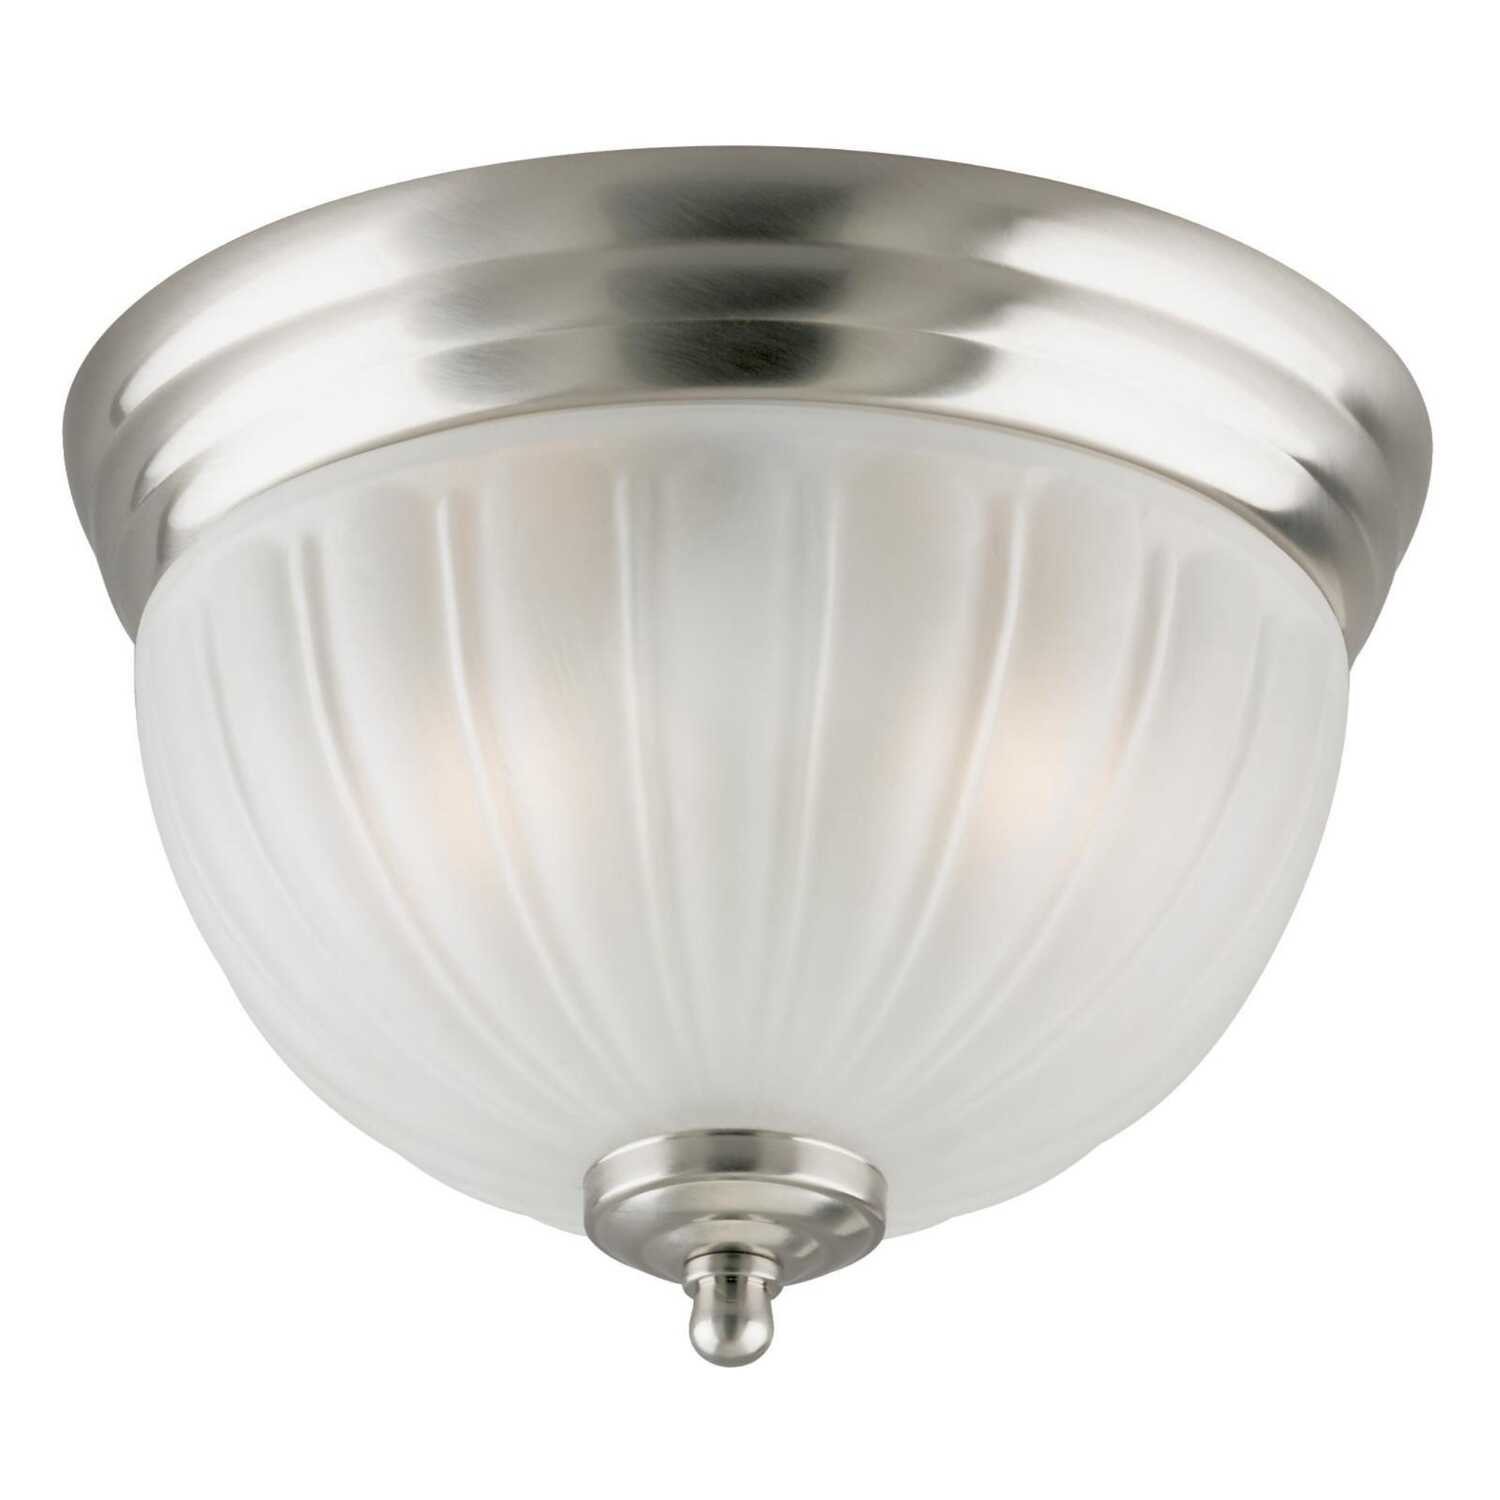 Westinghouse  6-3/4 in. H x 9.25 in. L x 9-1/2 in. W Ceiling Light